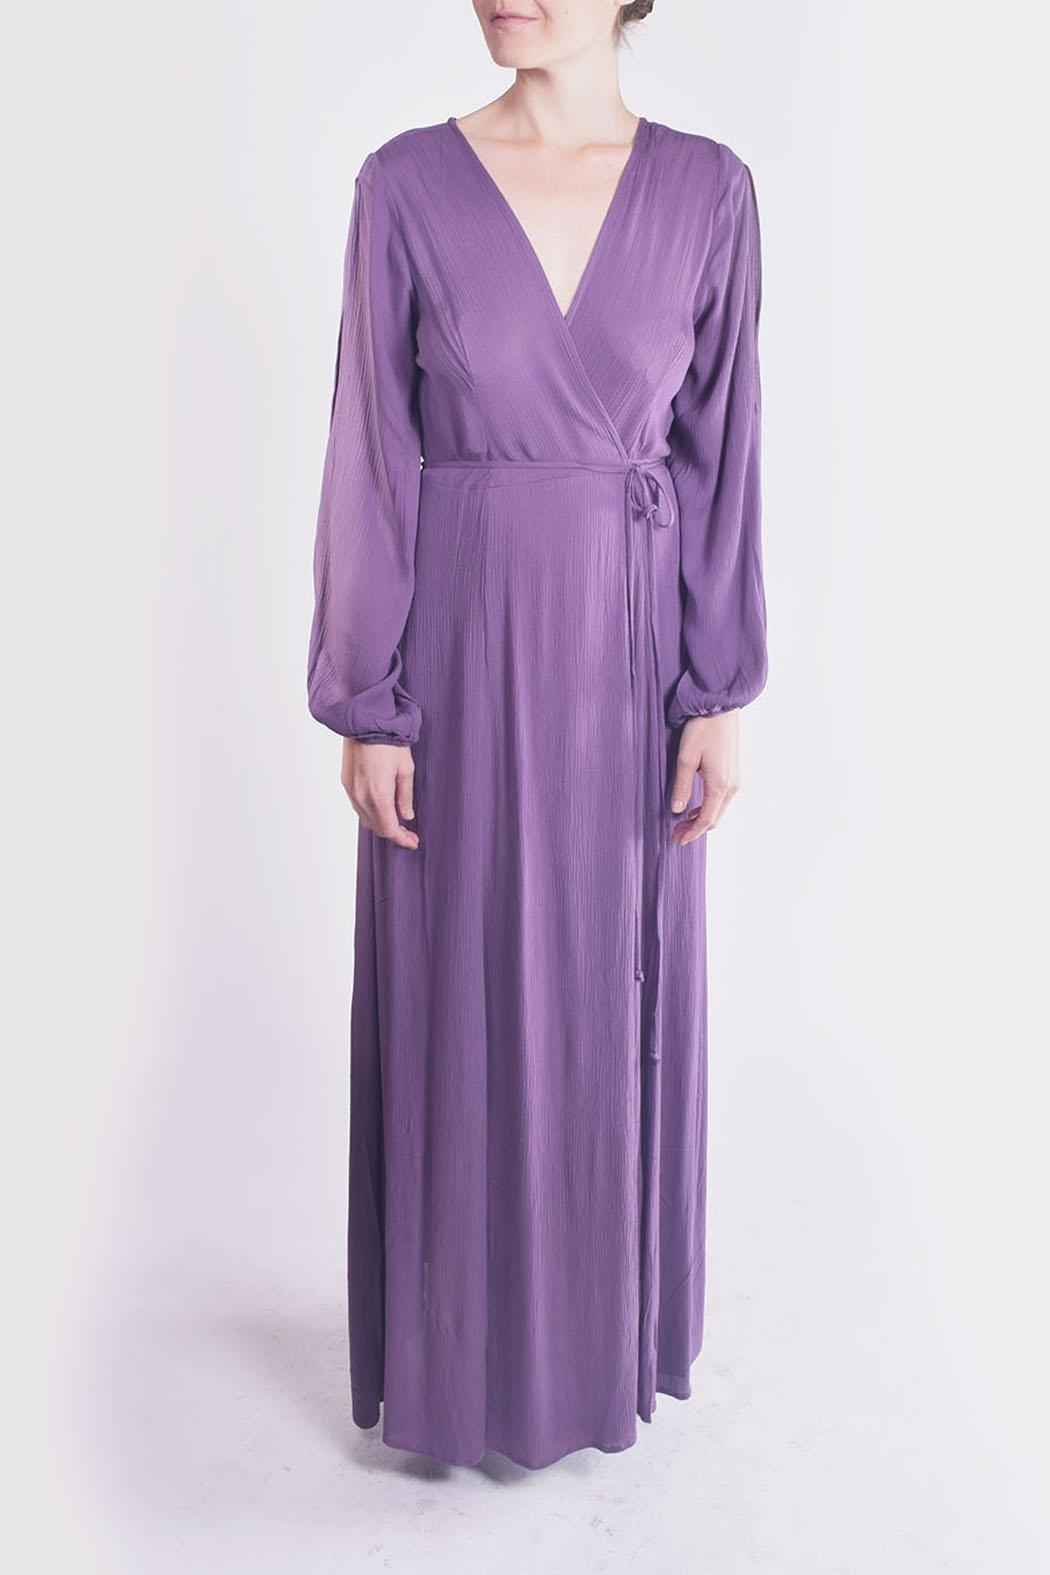 rokoko Lavender Wrap Maxi-Dress - Front Cropped Image